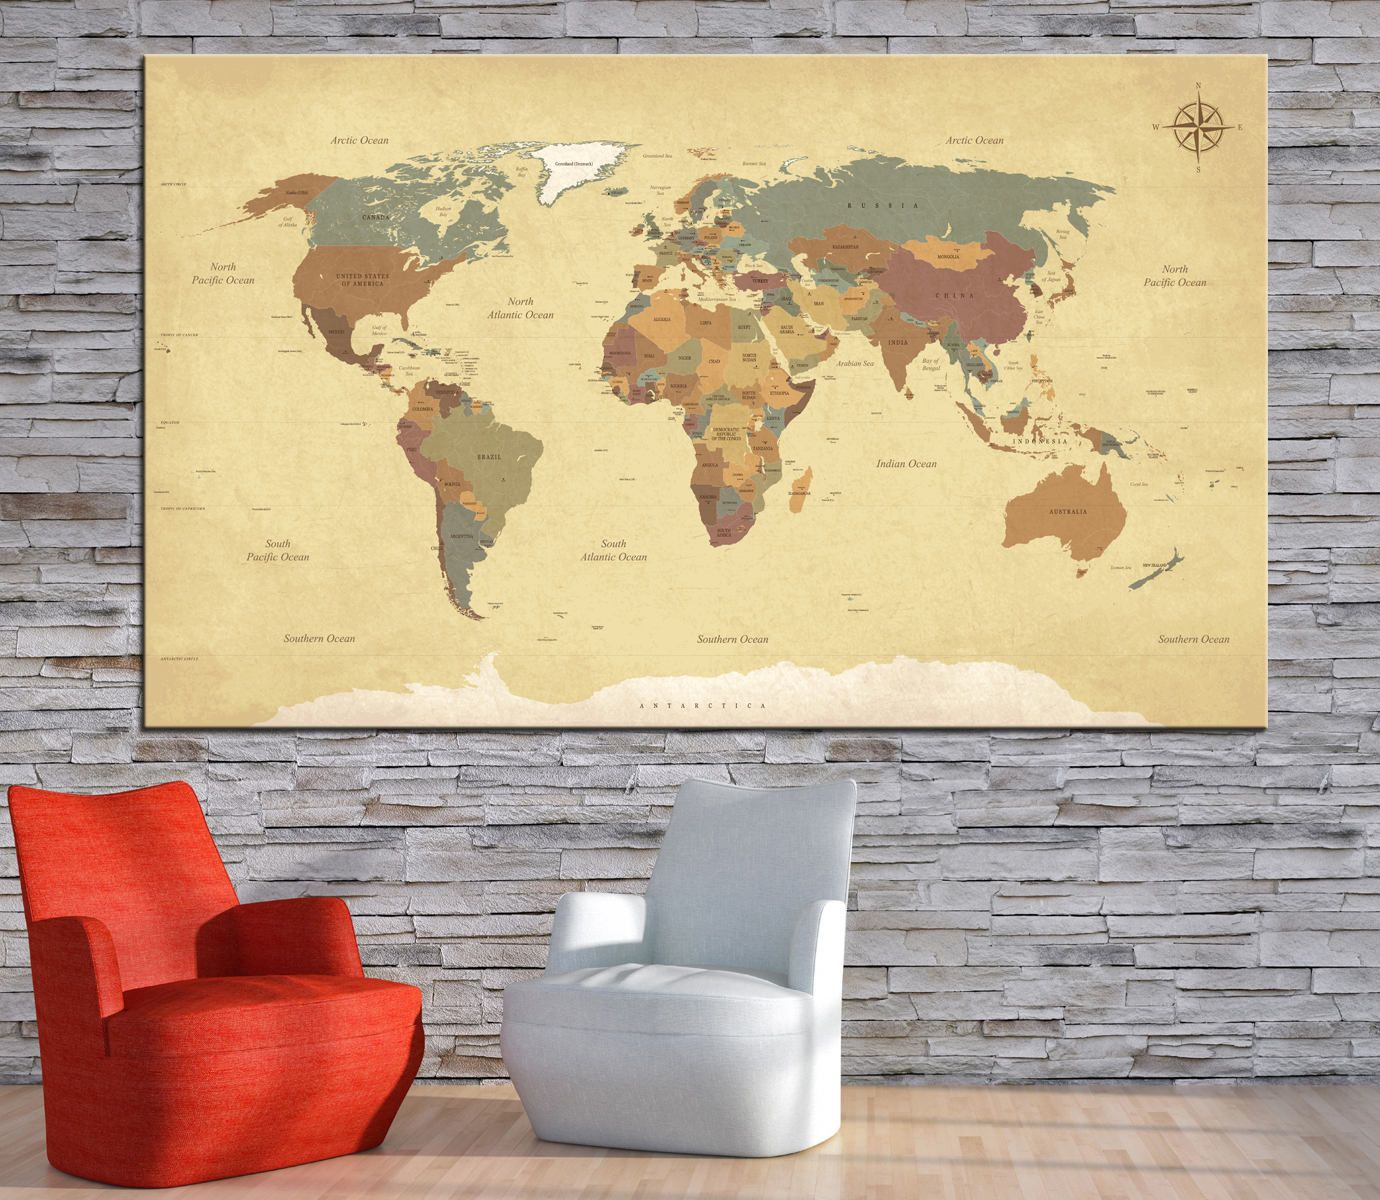 Large textured vintage world map whith countries names canvas print large textured vintage world map whith countries names canvas printextra large detailed world map gumiabroncs Image collections